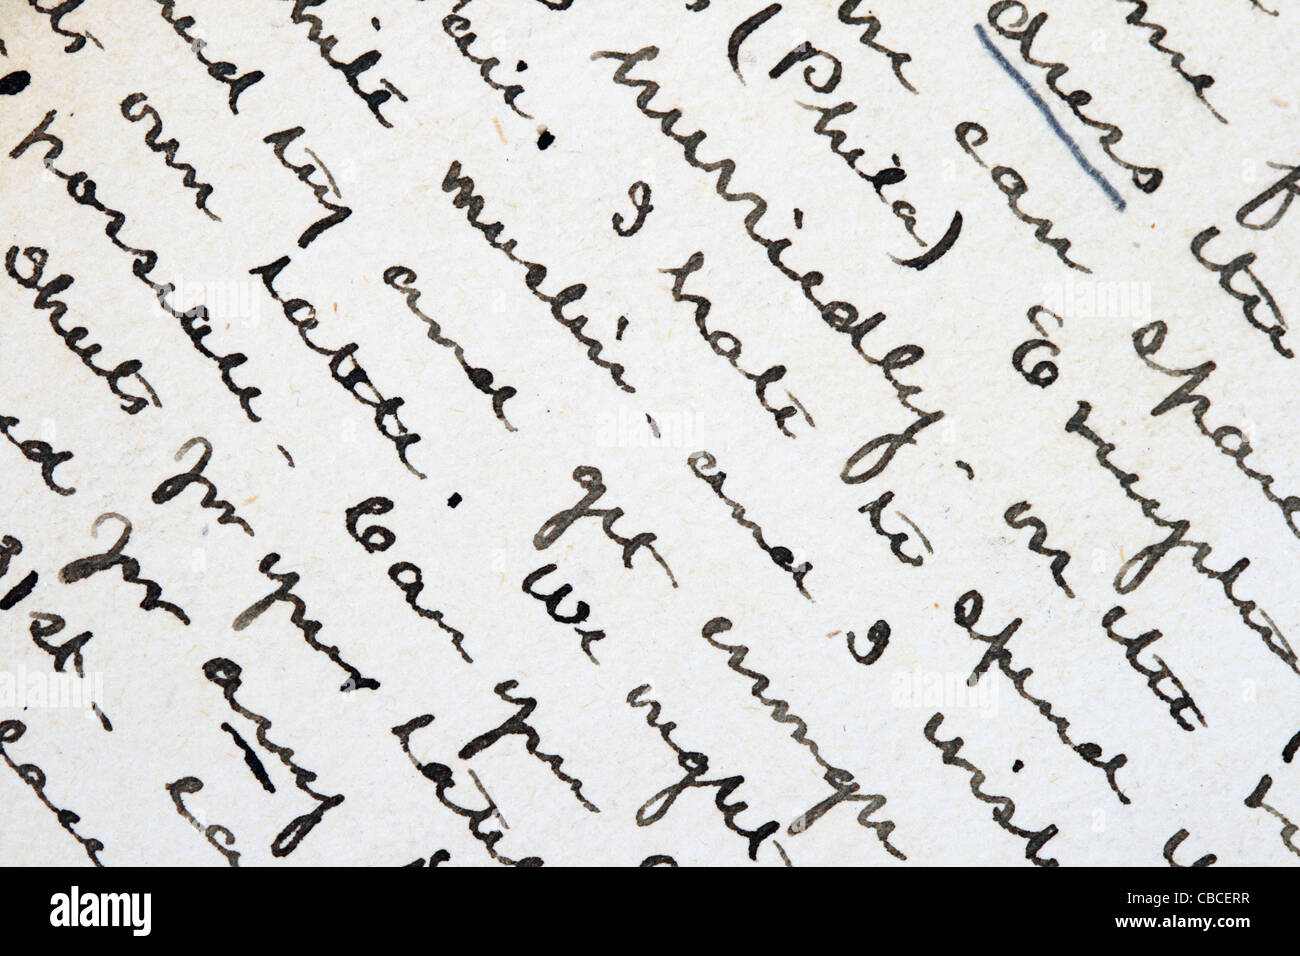 cursive writing stock photos u0026 cursive writing stock images alamy